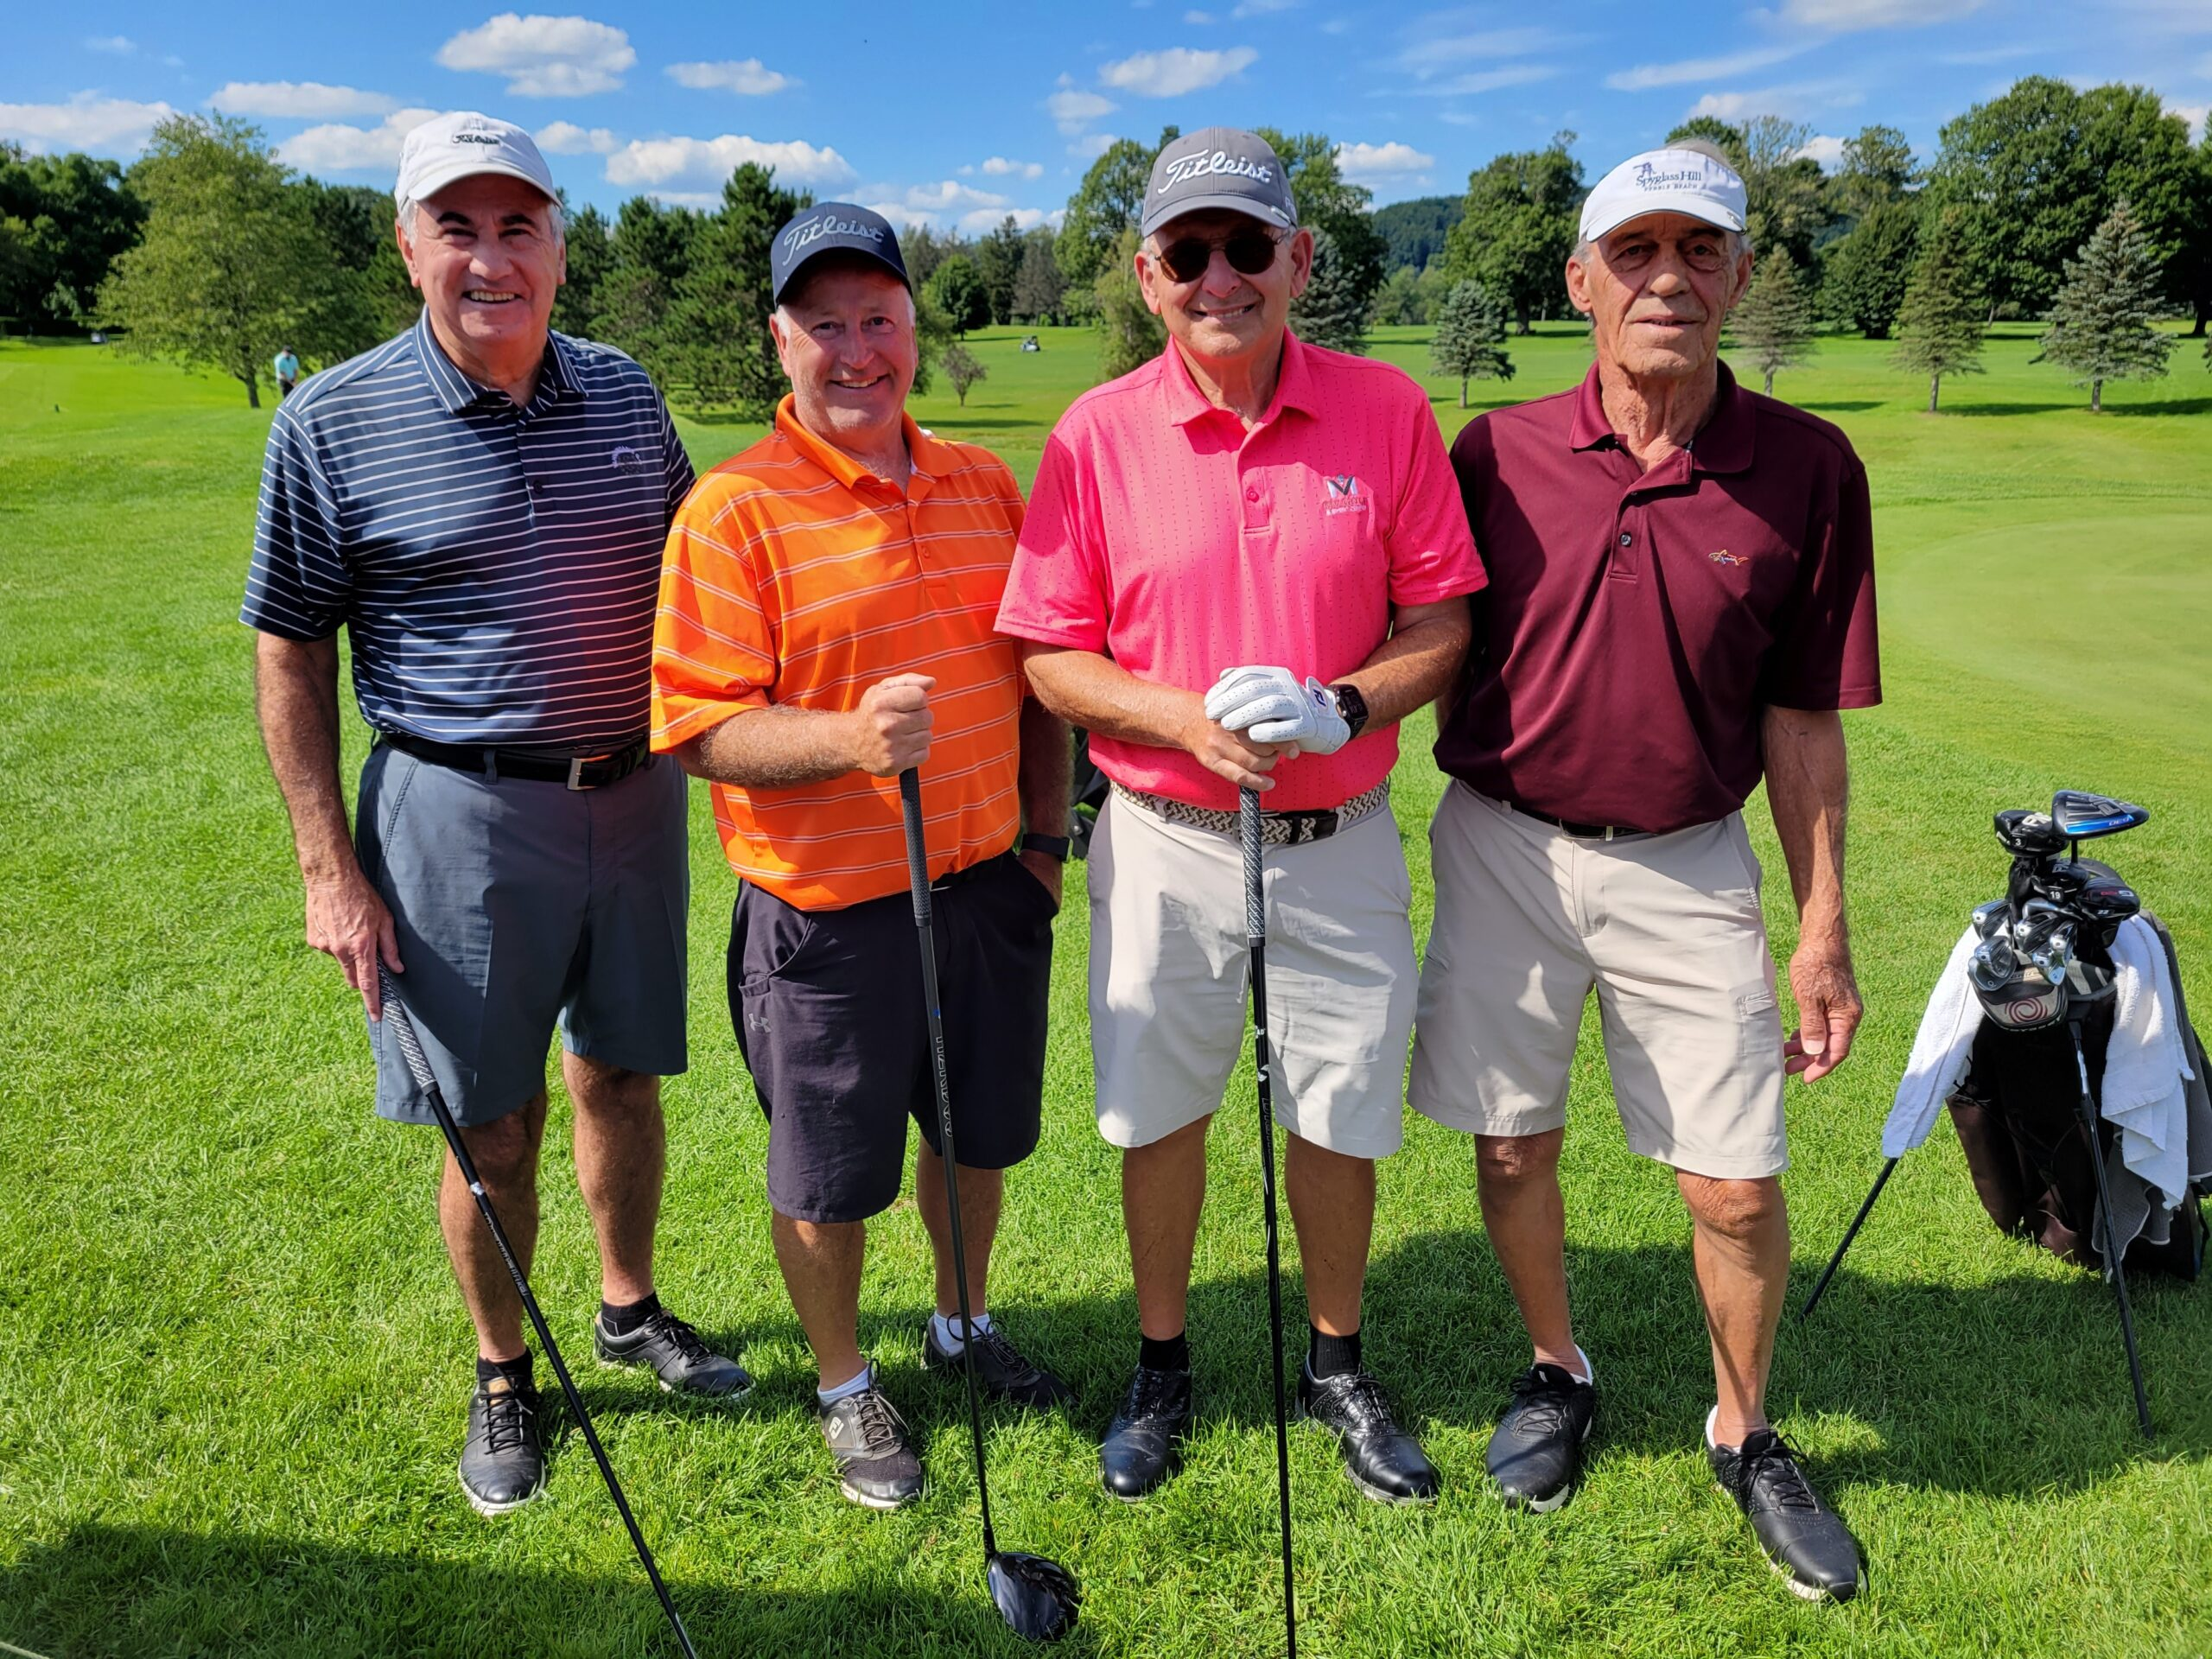 Arc Herkimer's Annual Golf Open Held at MV Golf & Event Center in Little Falls